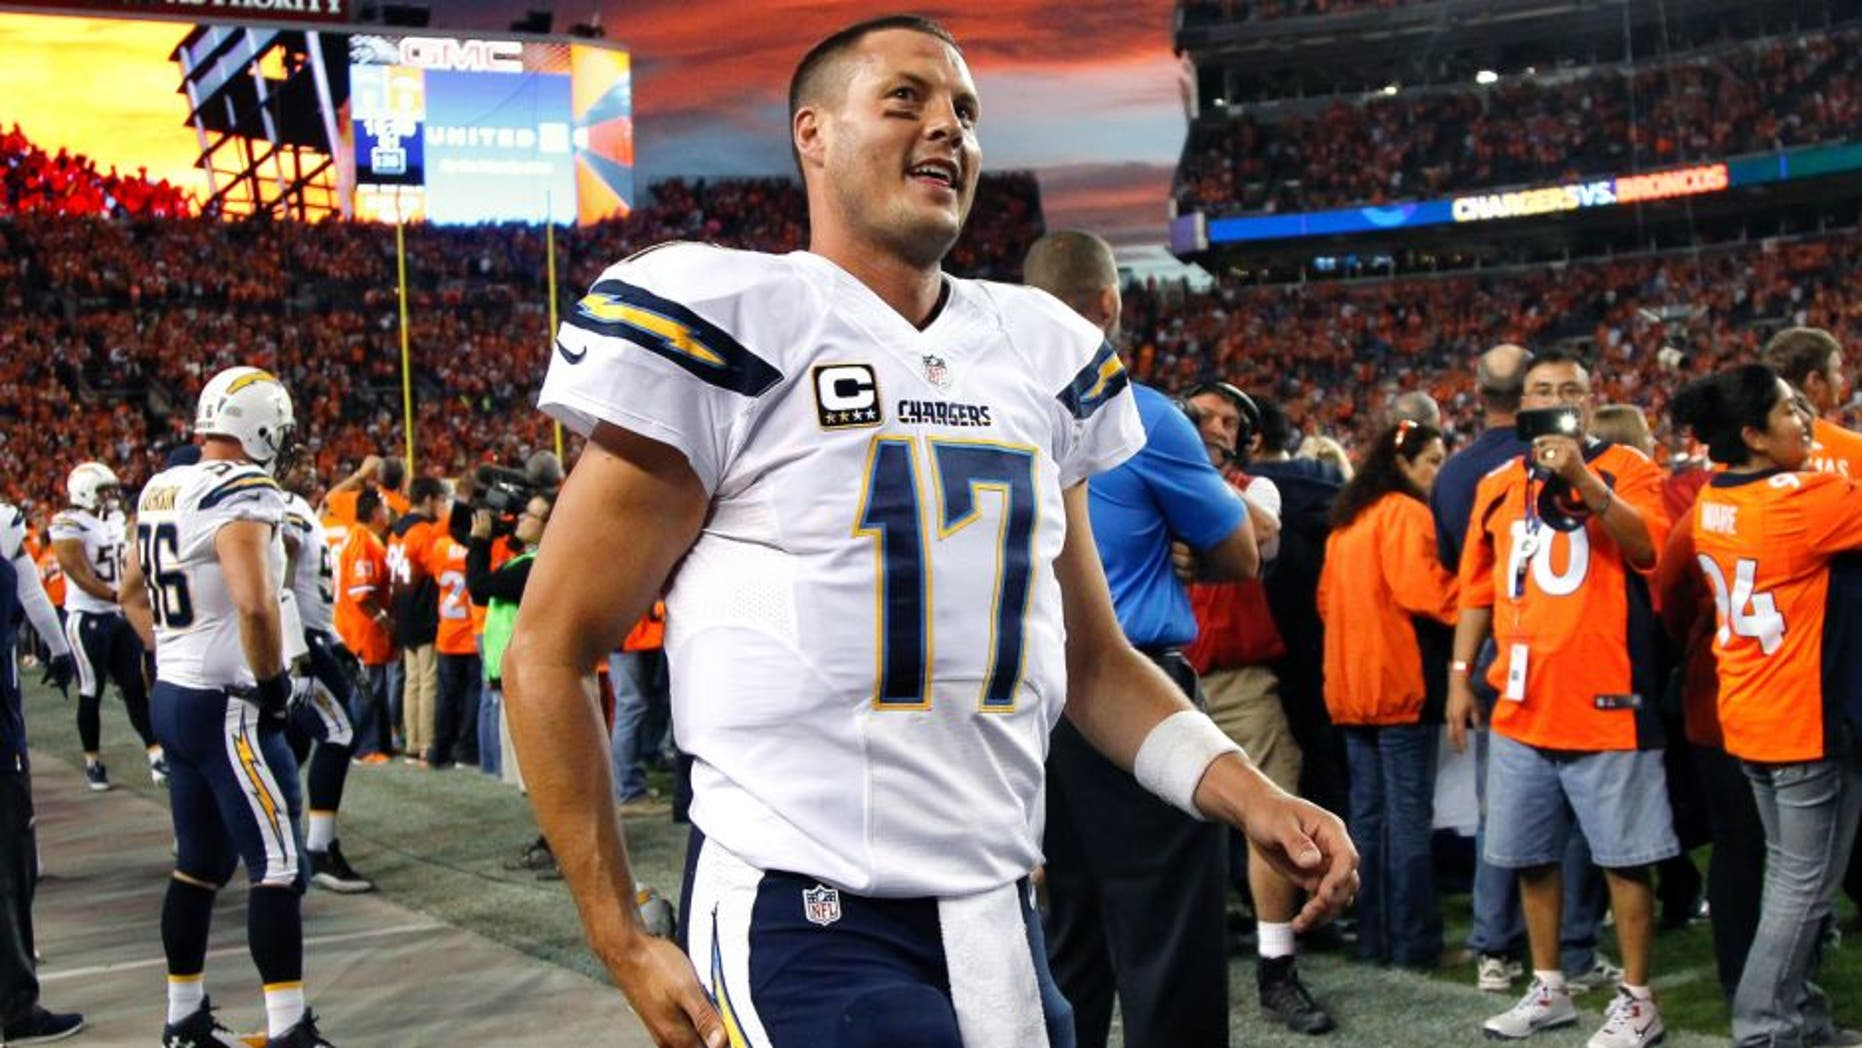 DENVER, CO - OCTOBER 23: Quarterback Philip Rivers #17 of the San Diego Chargers jogs along the sideline before the start of a game against the Denver Broncos at Sports Authority Field at Mile High on October 23, 2014 in Denver, Colorado. (Photo by Doug Pensinger/Getty Images)